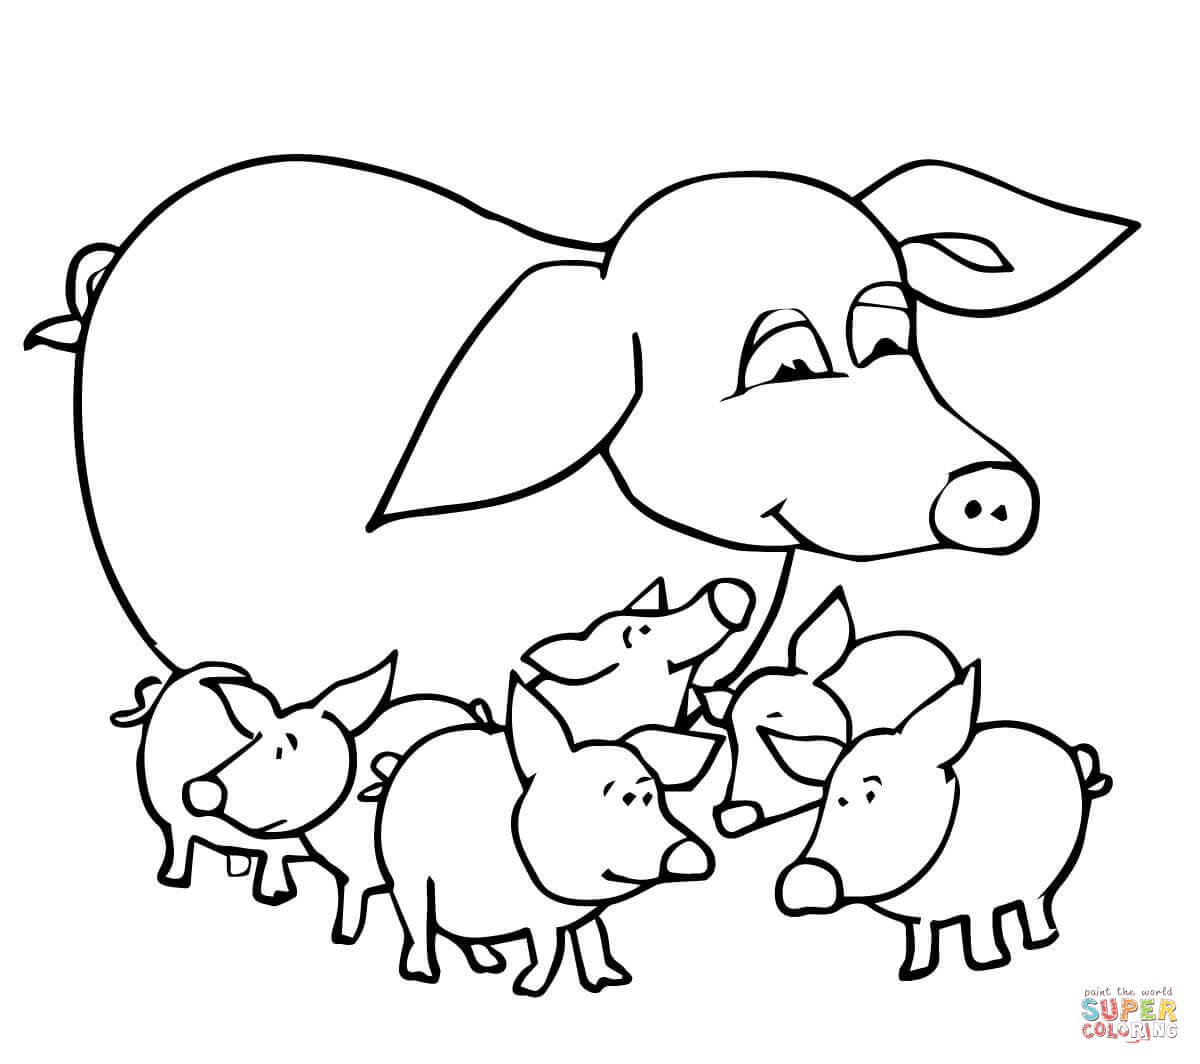 Best ideas about Pig Coloring Pages . Save or Pin Baby Pigs and Mother coloring page Now.